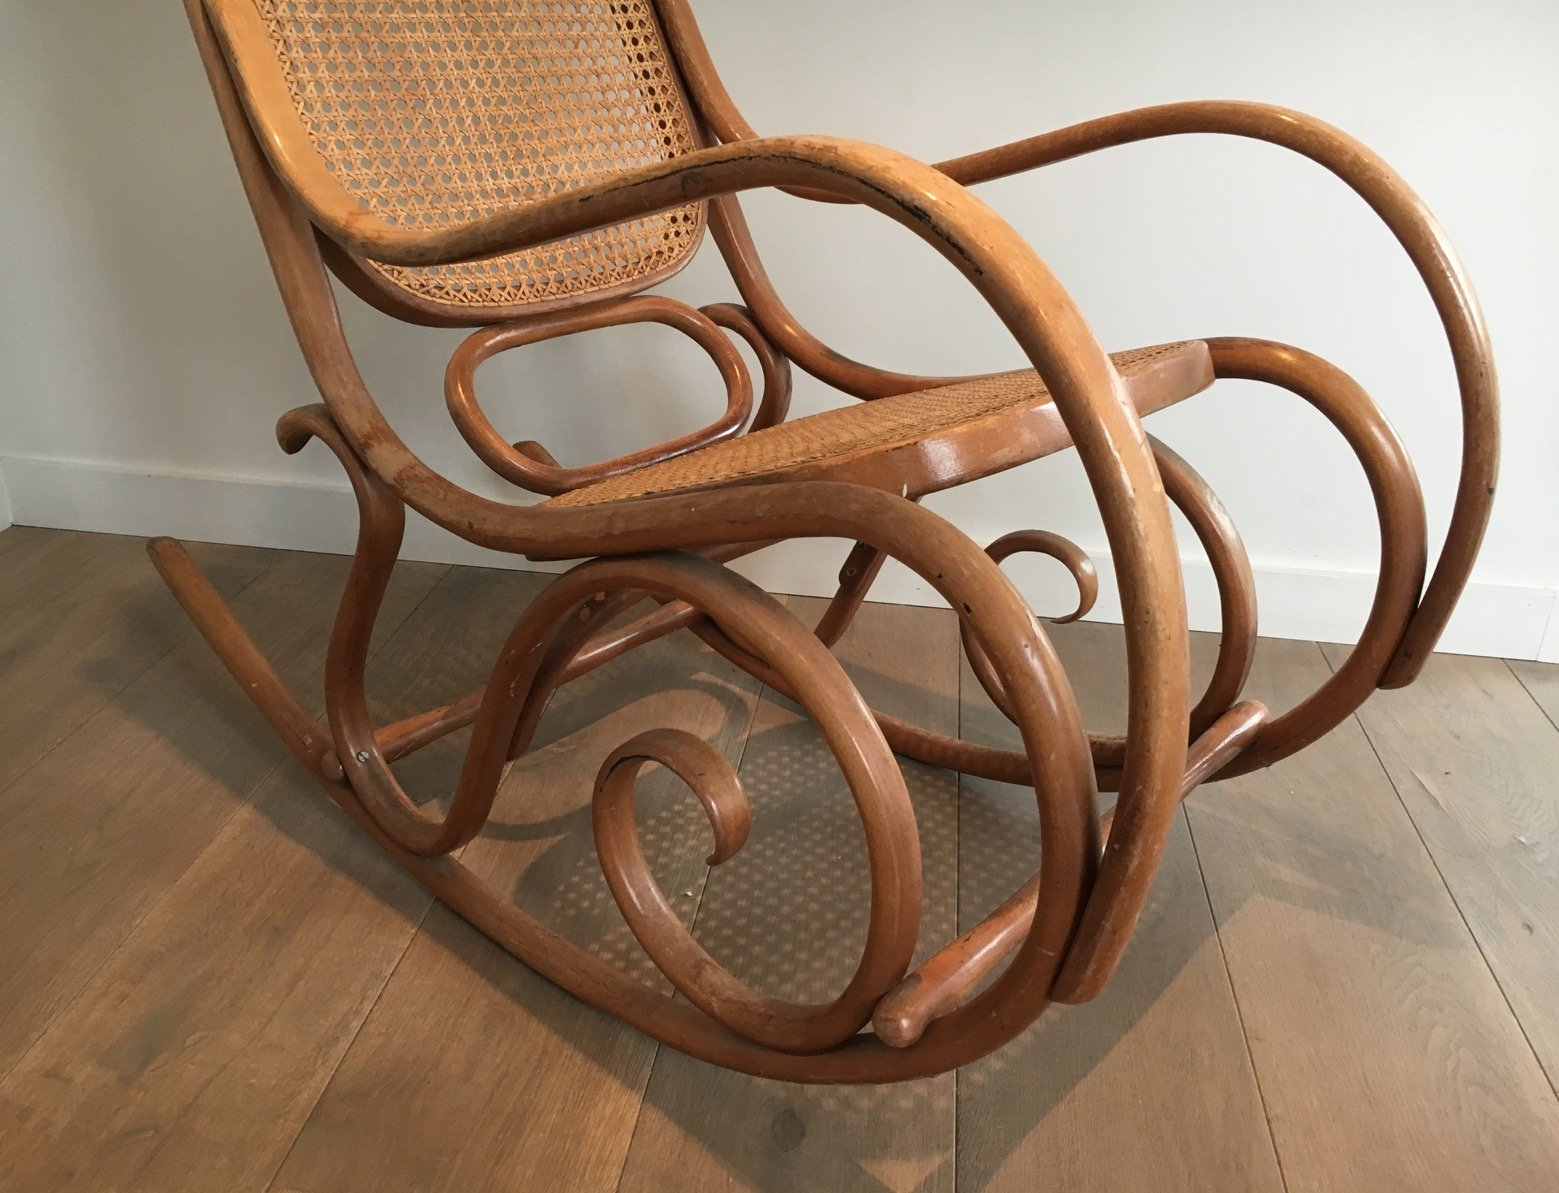 Vintage bentwood chairs - Vintage Bentwood Rocking Chair 1970s